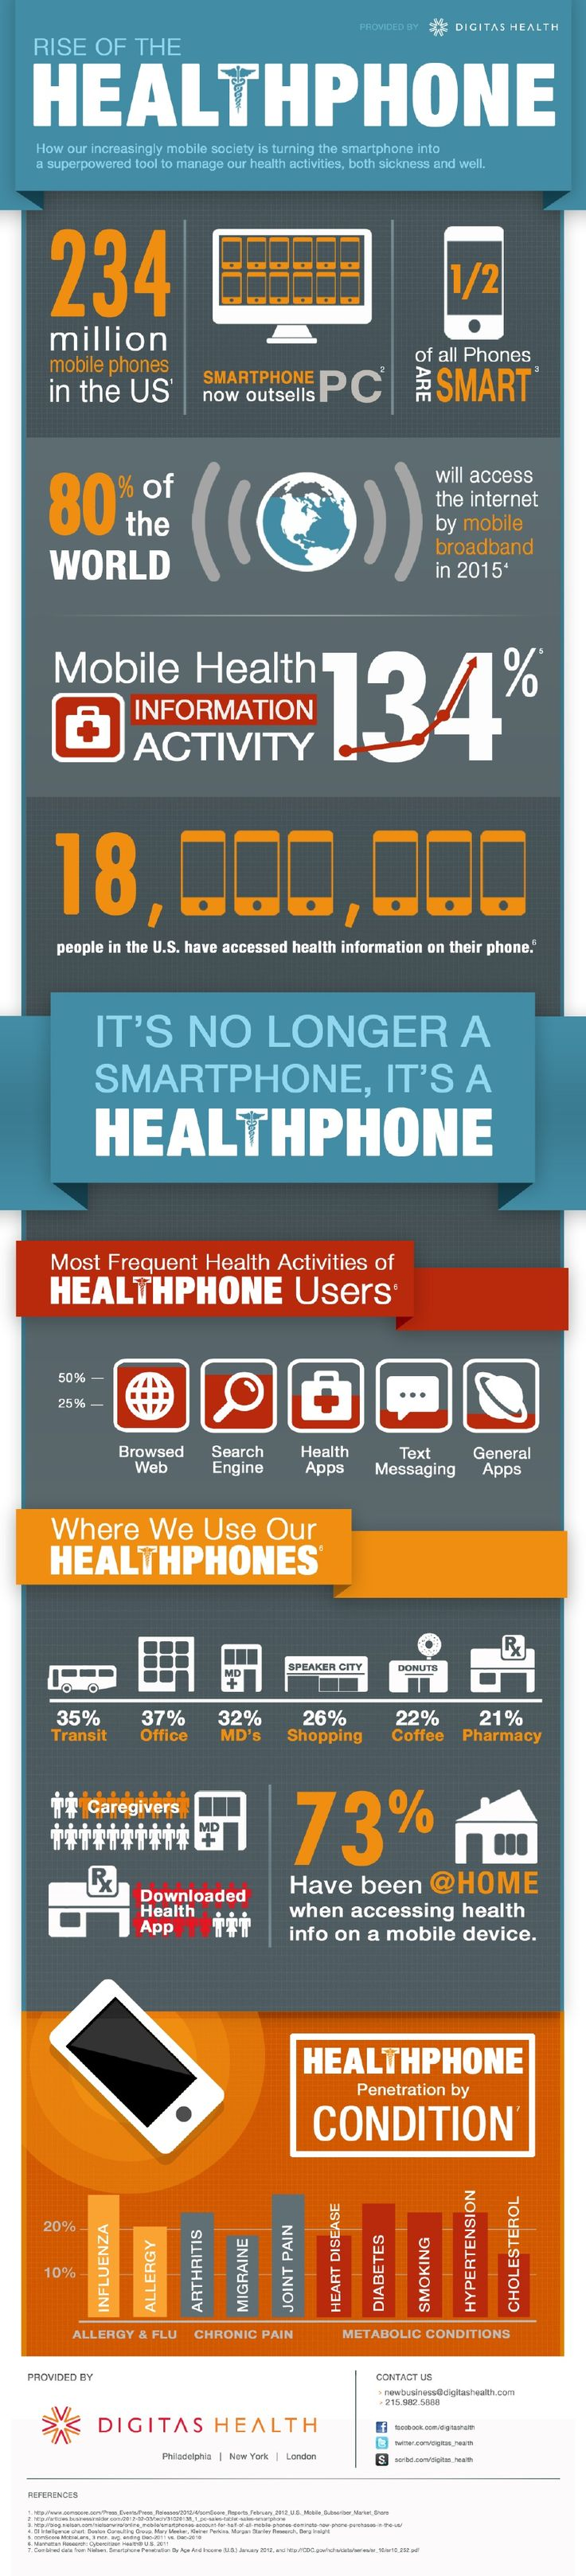 This infographic shows how ubiquitous smartphones have become in the management of personal healthcare. #healthit